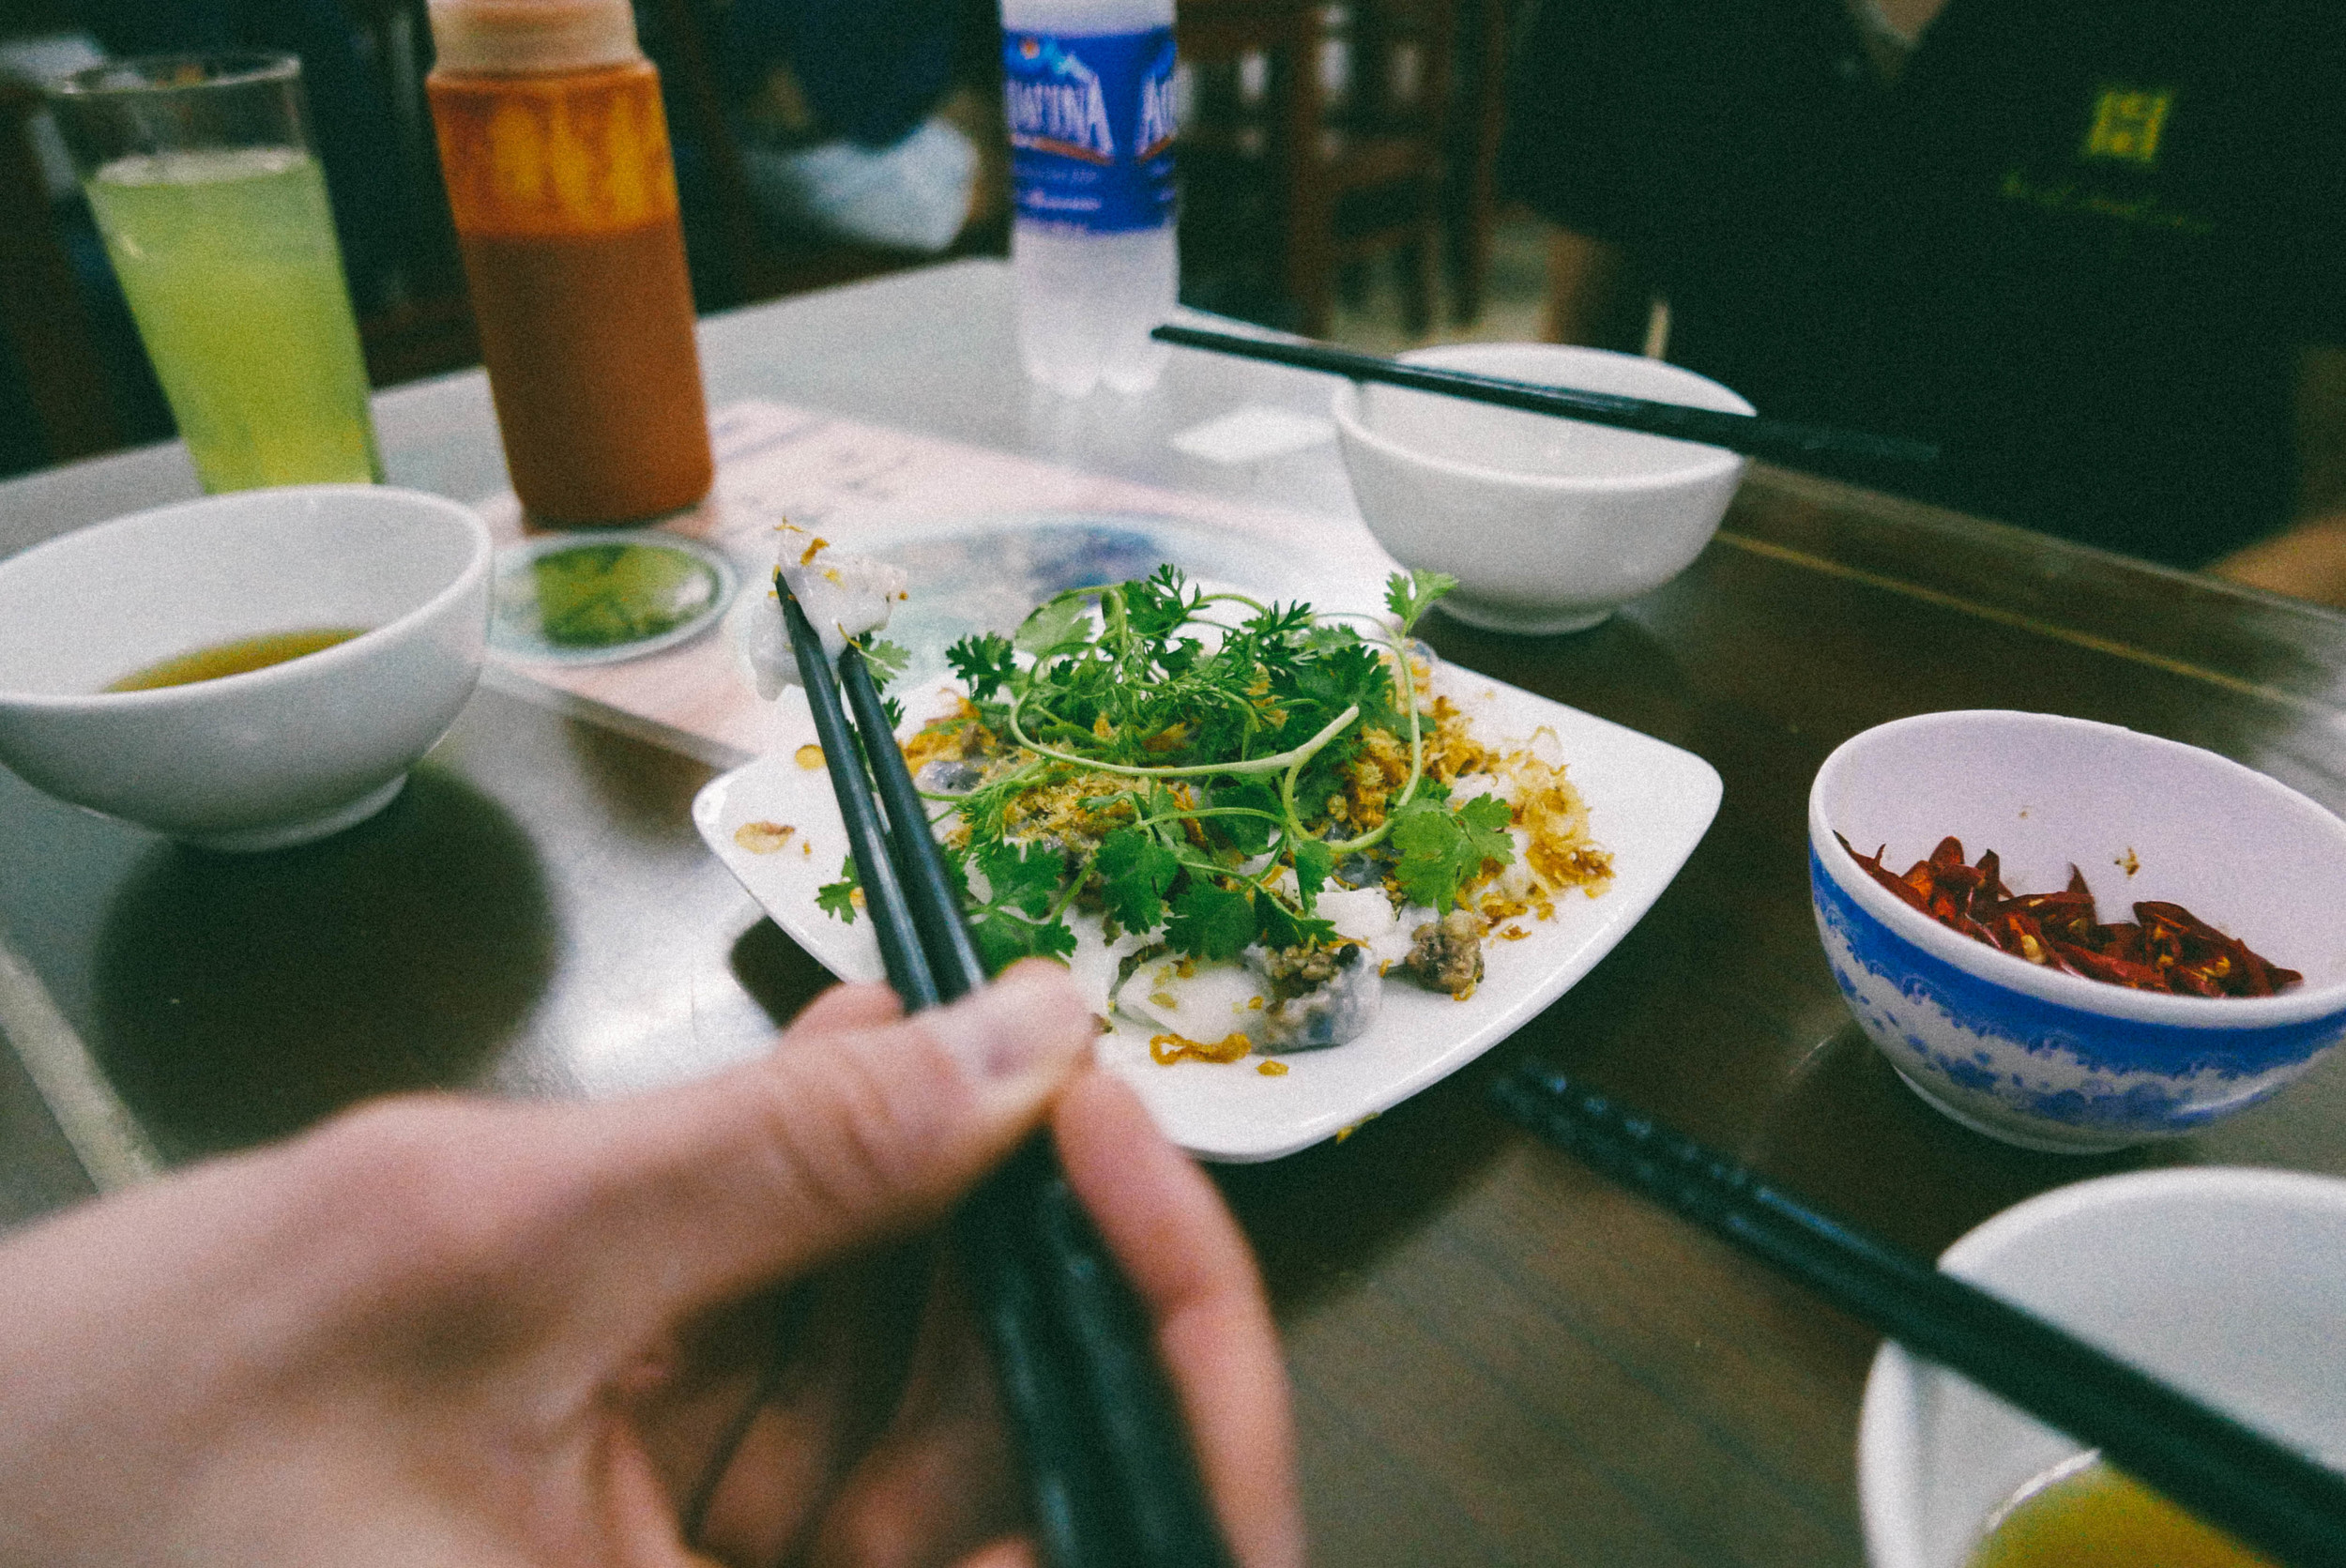 Digging into a plate of banh cuon.